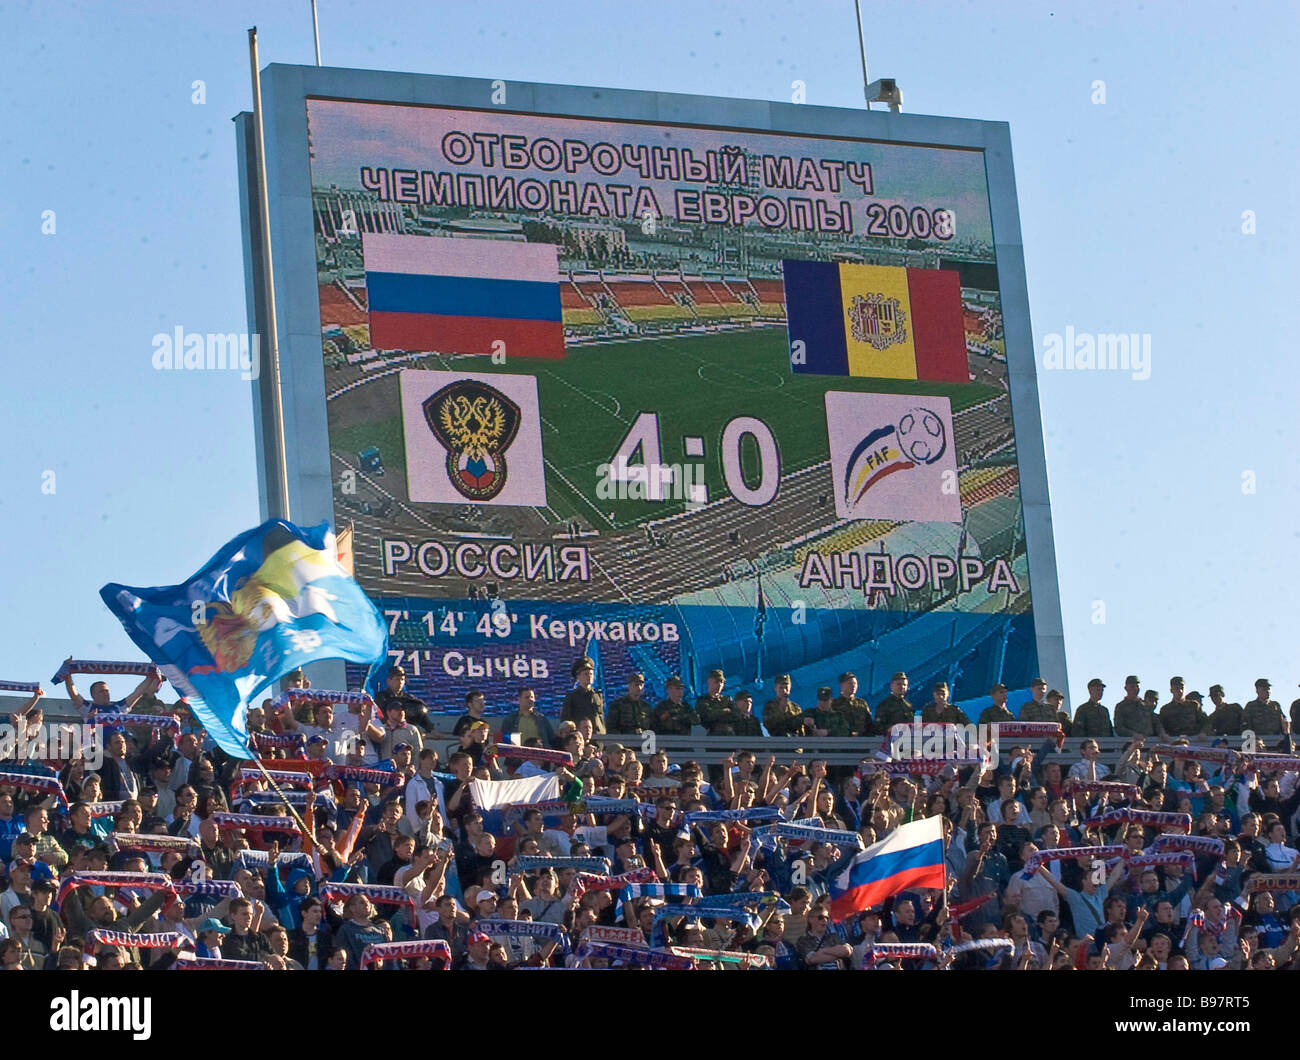 Russia defeated Andorra 4 0 at the European championship qualifying match - Stock Image